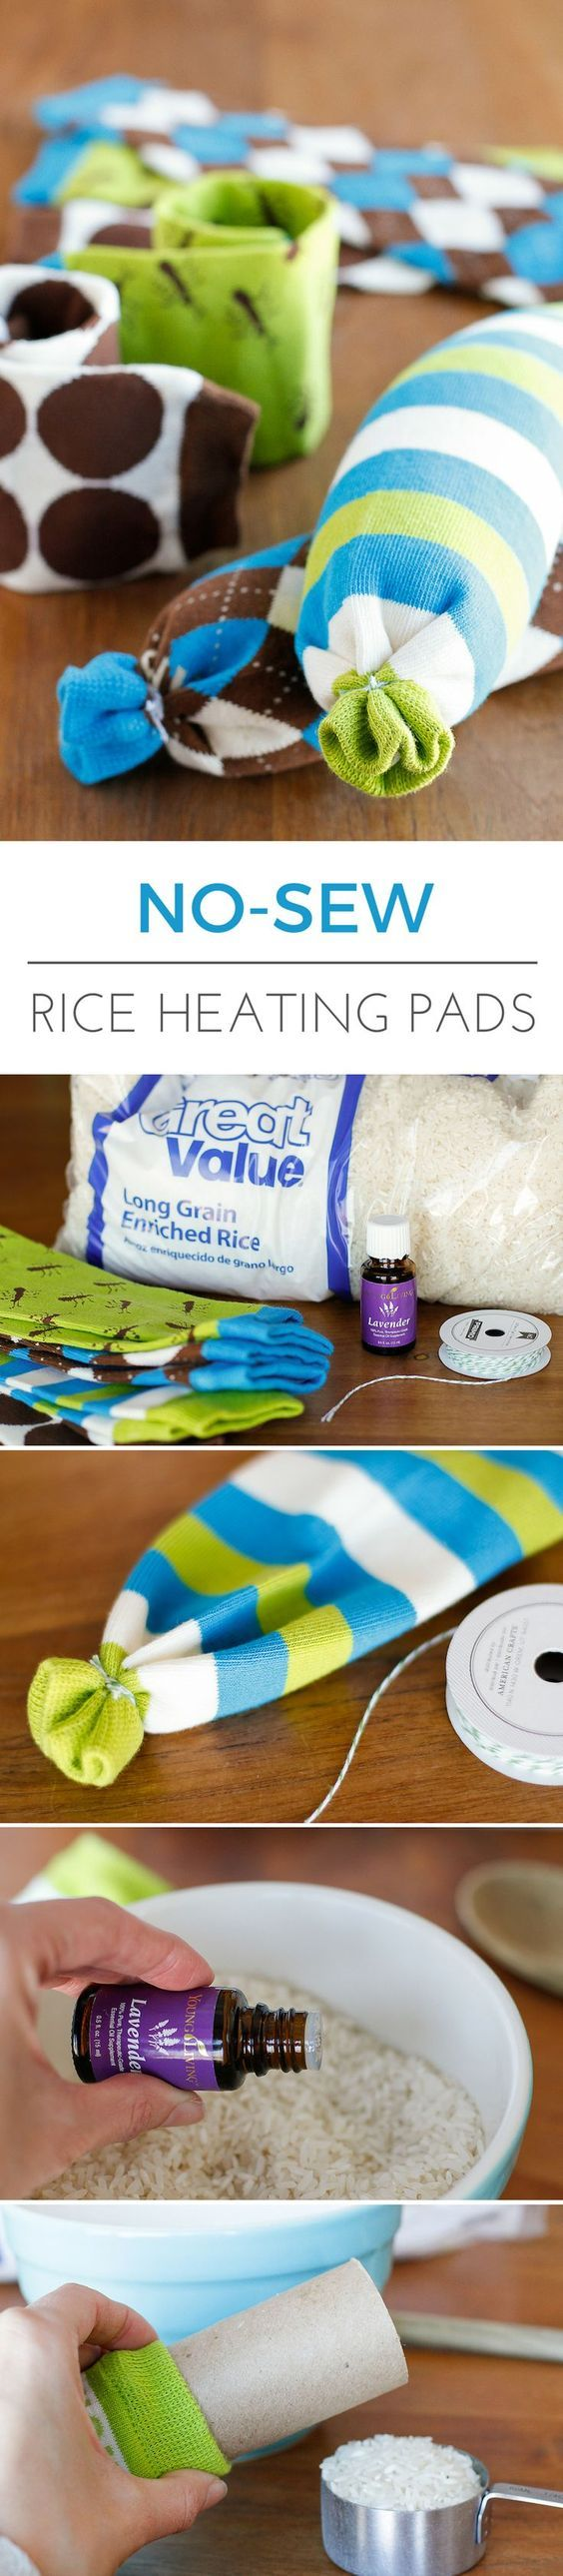 Easy No-Sew Rice Heating Pad -- making this homemade microwavable rice heating pad took less than 5 minutes start to finish. Perfect for soothing sore muscles or warming up from the cold, especially when you add a few drops of essential oil!